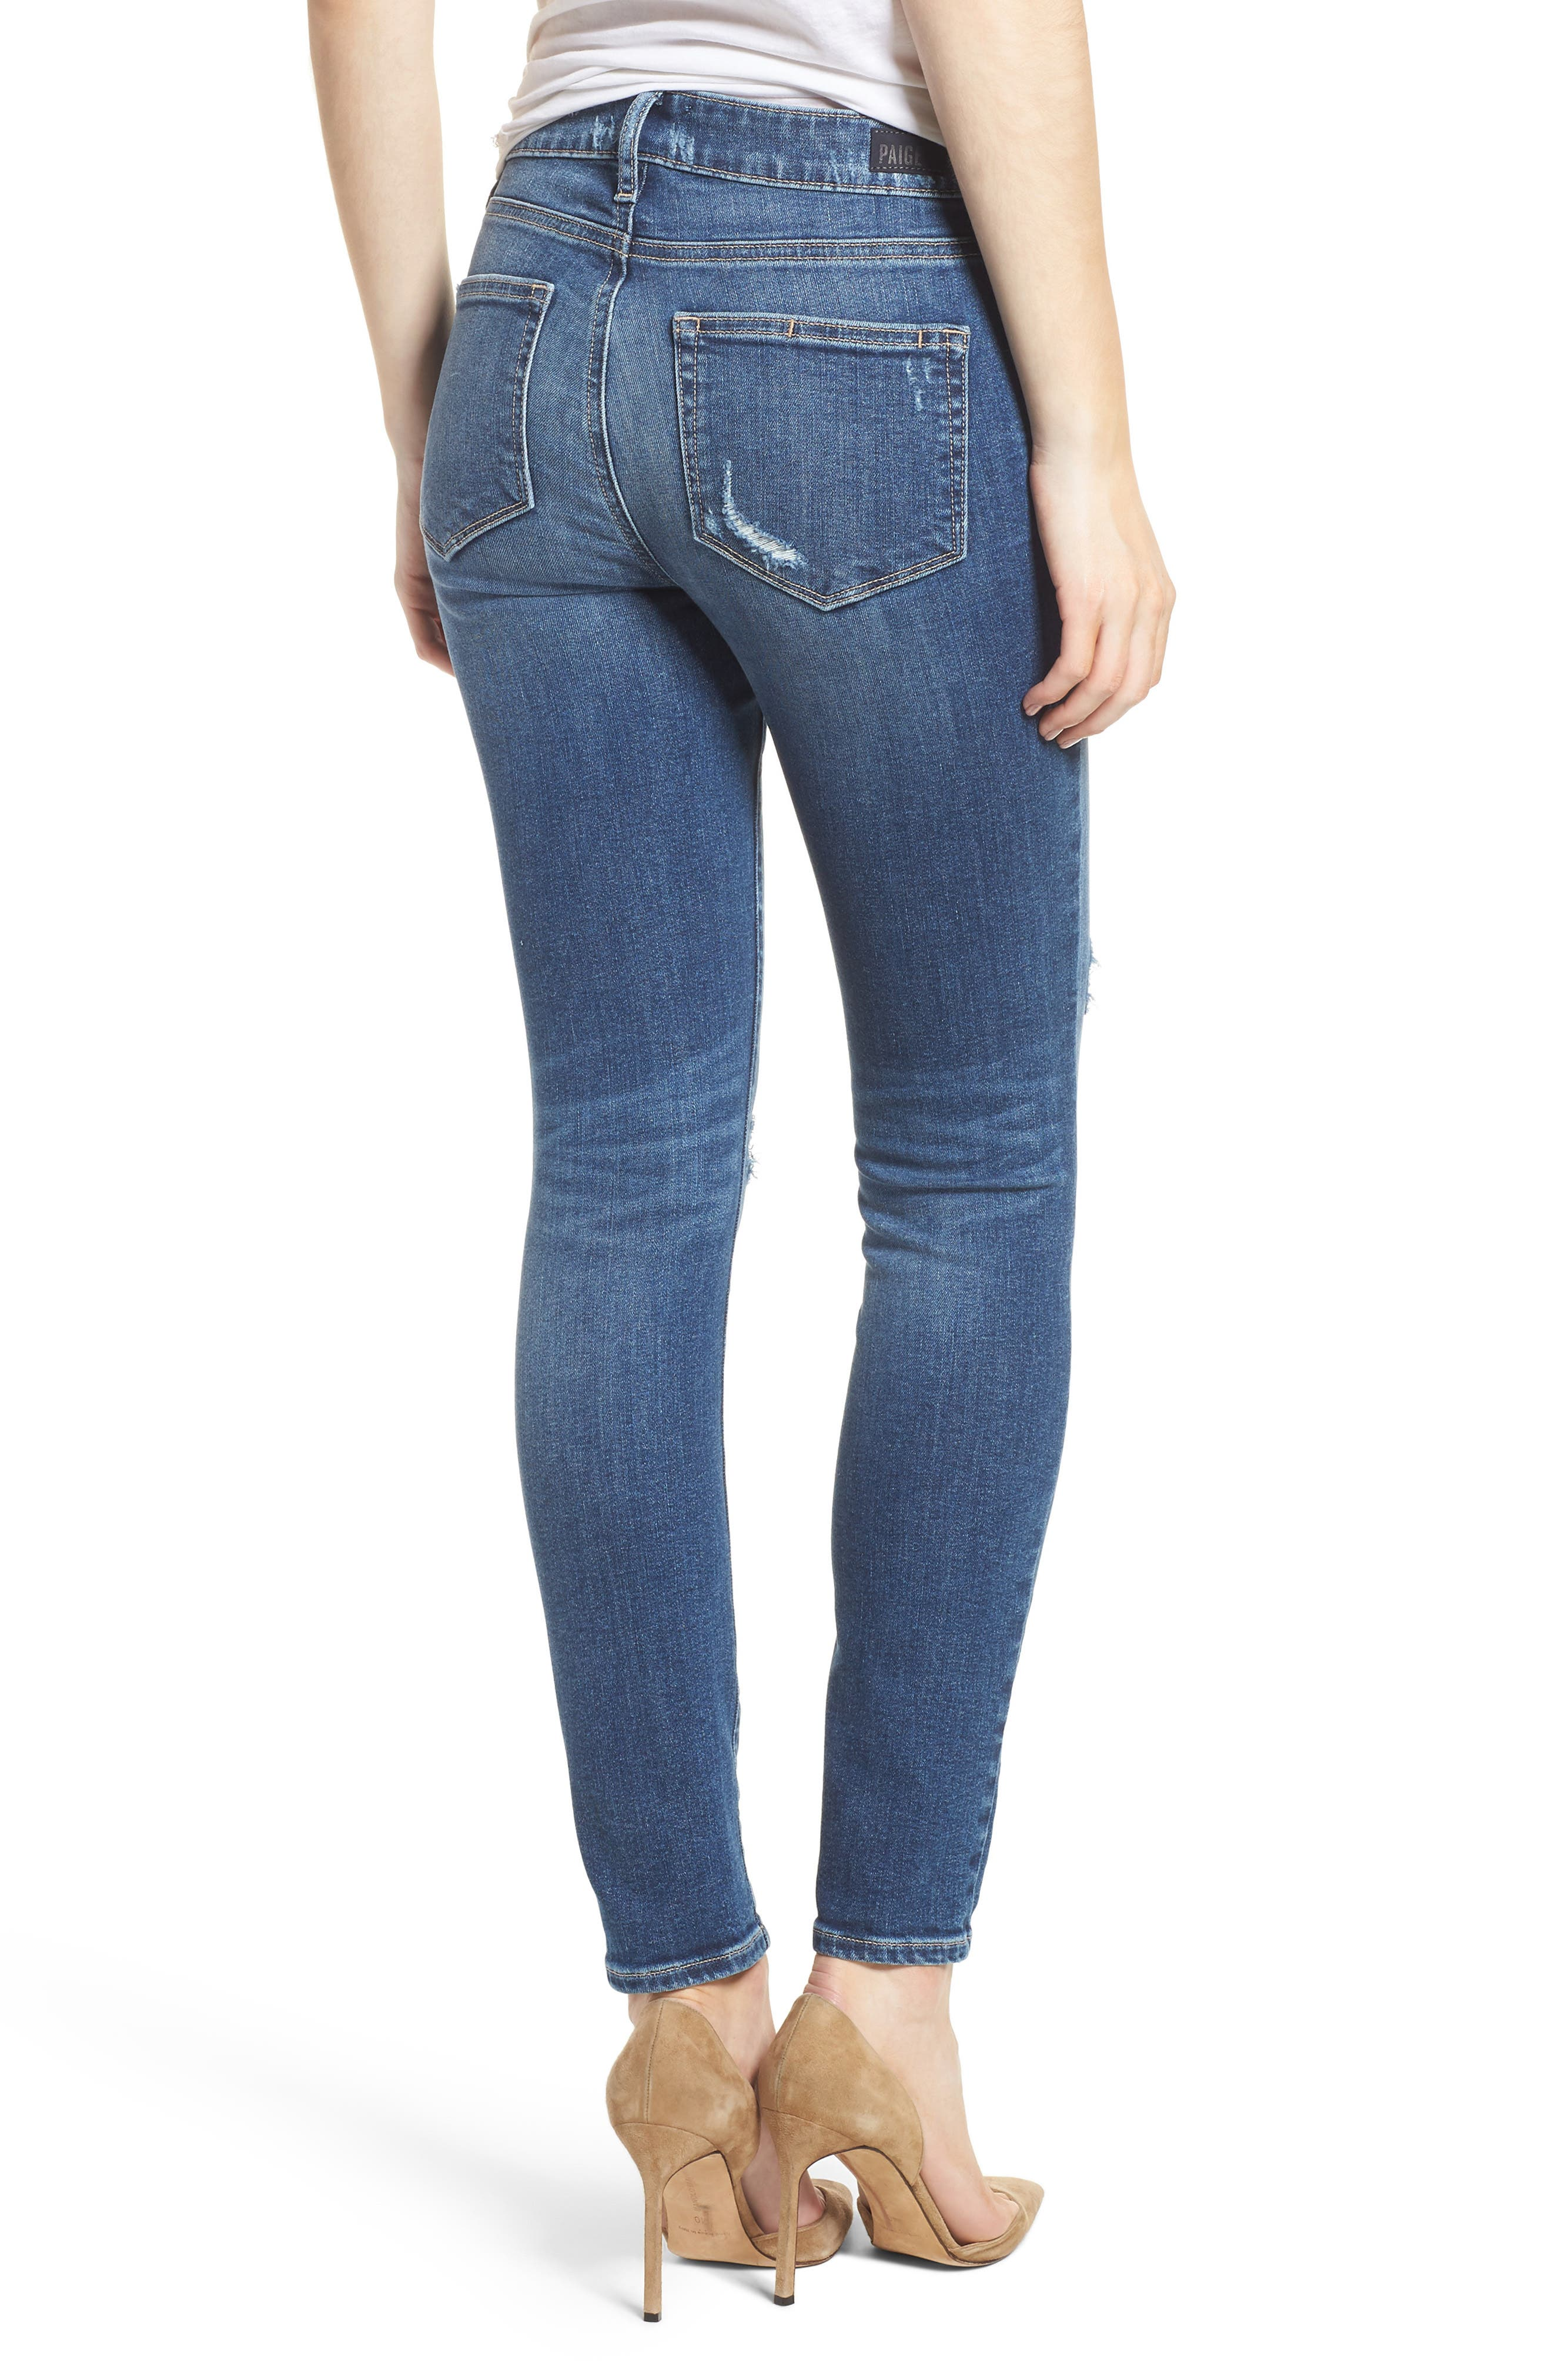 Transcend Vintage - Verdugo Ankle Skinny Jeans,                             Alternate thumbnail 2, color,                             400